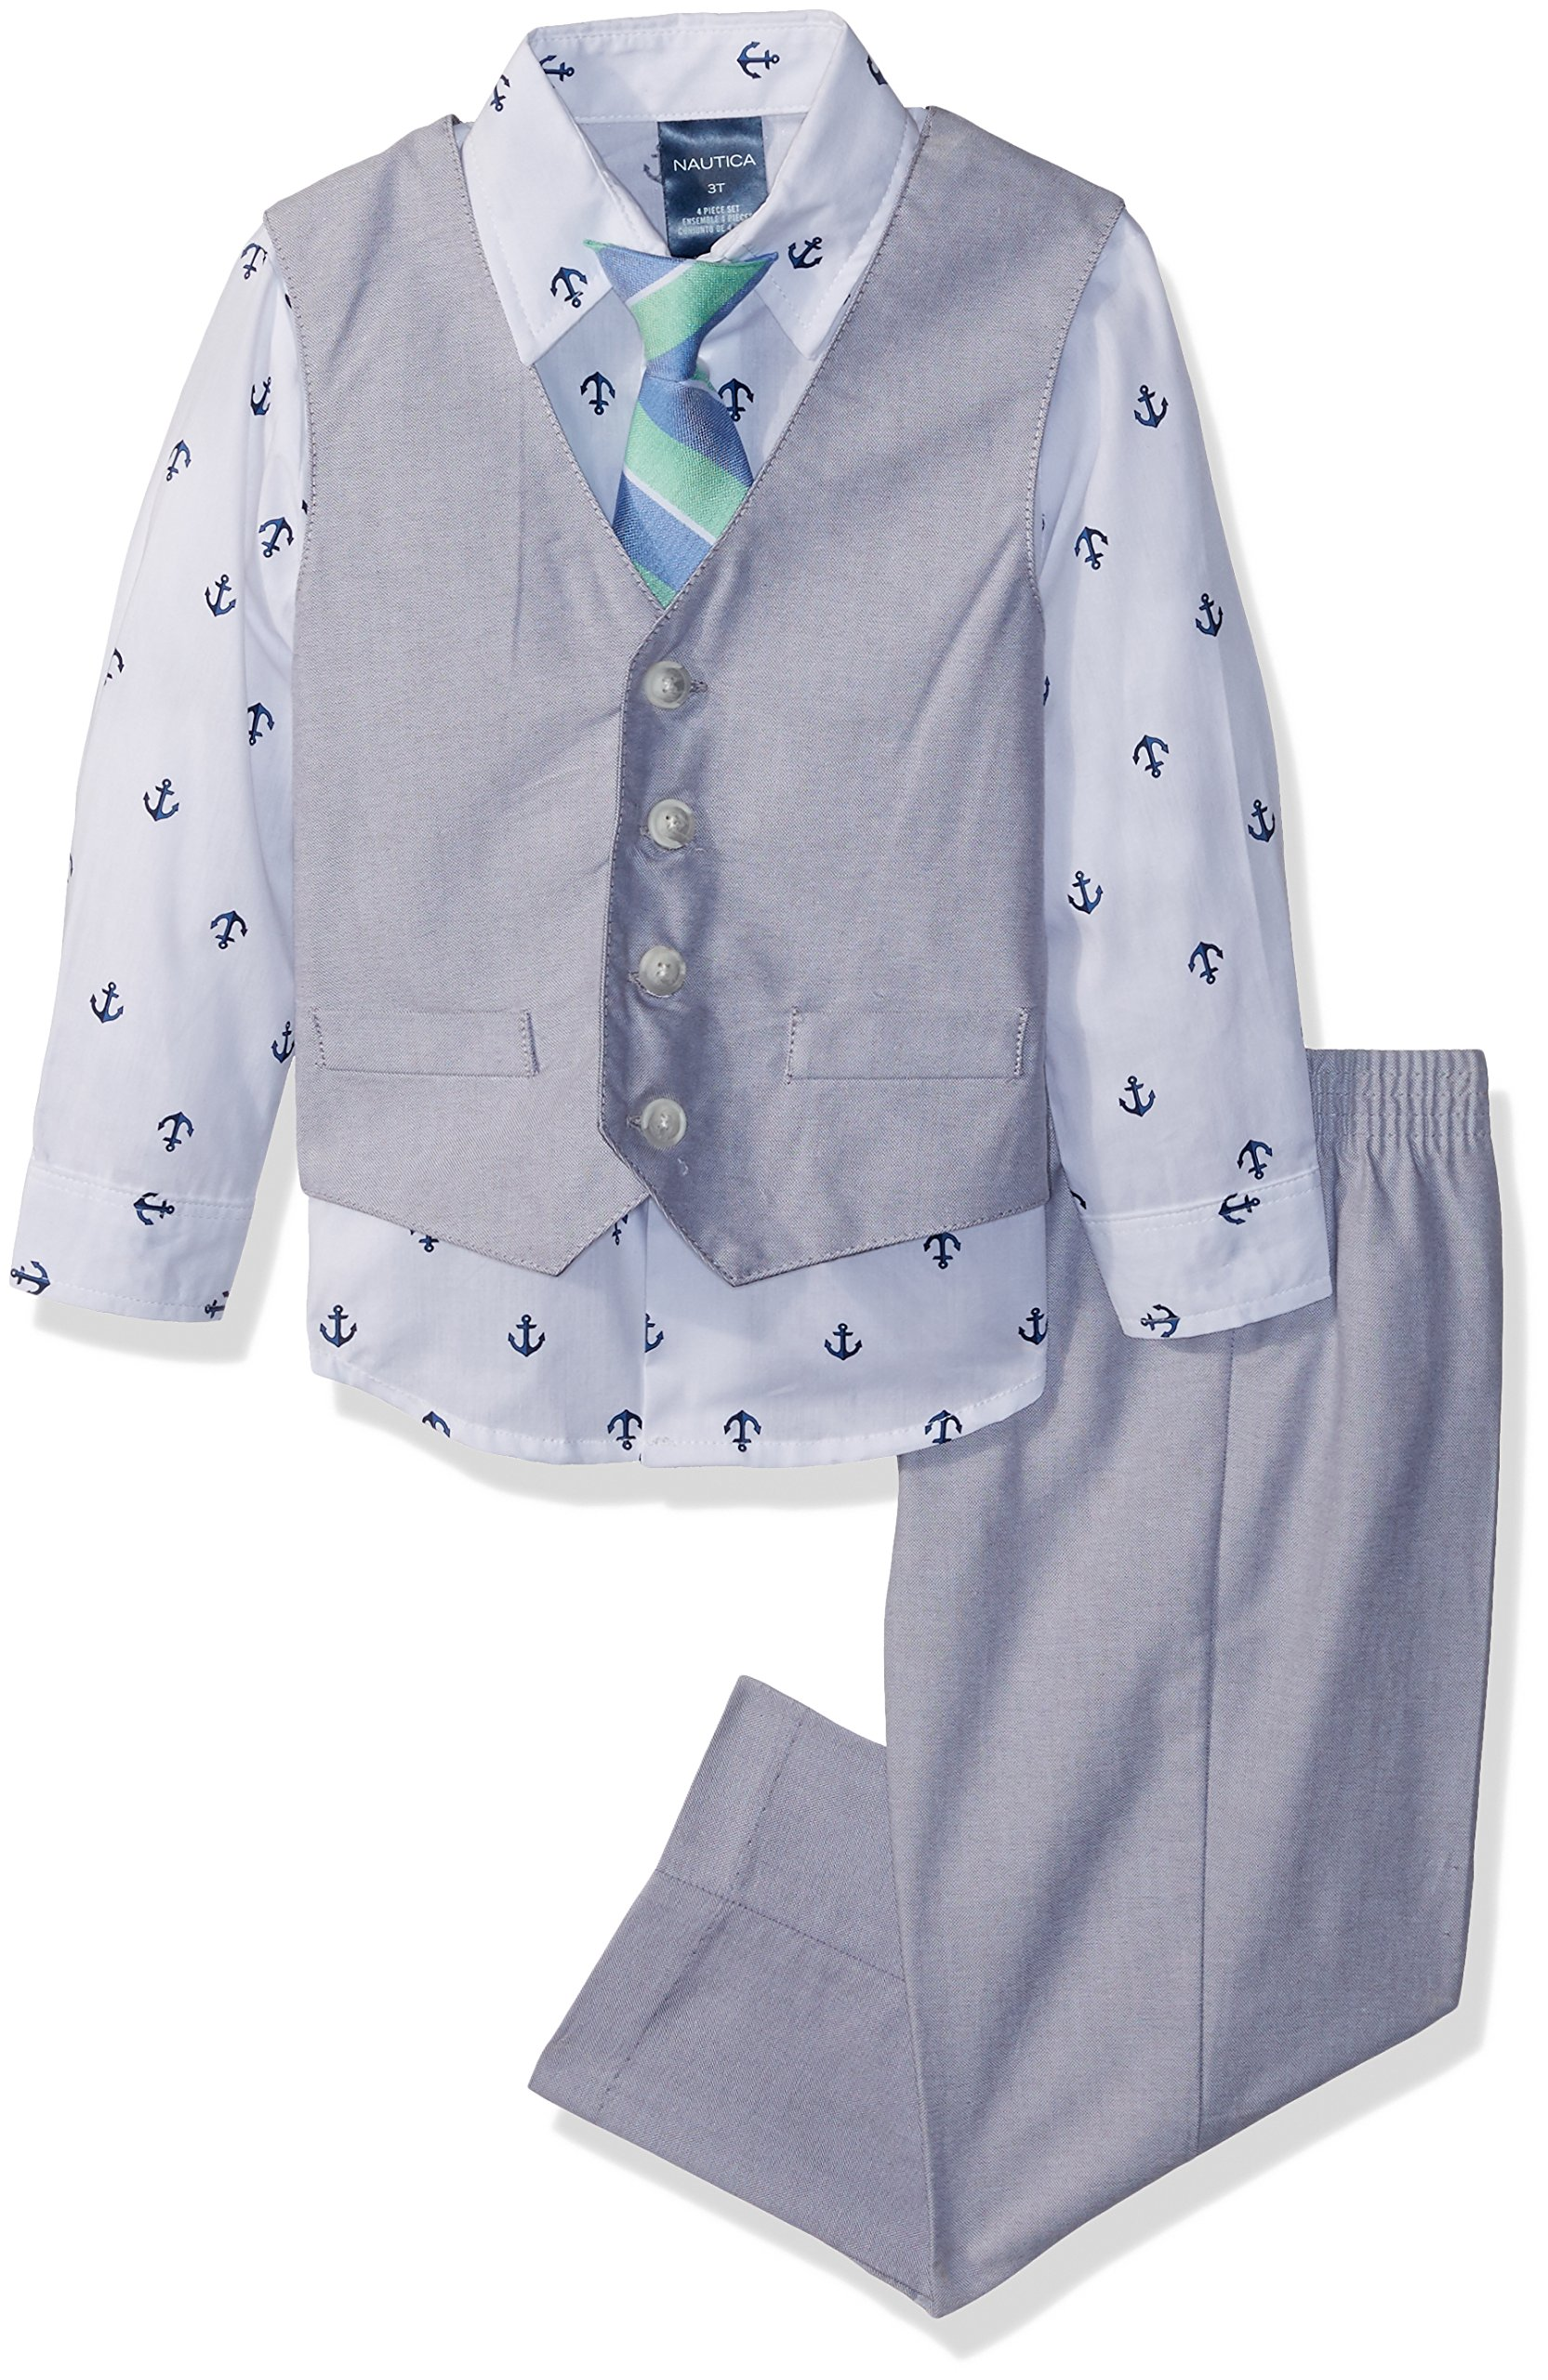 Nautica Boys' Toddler 4-Piece Formal Dresswear Vest Set, Mouse Grey Oxford, 3T